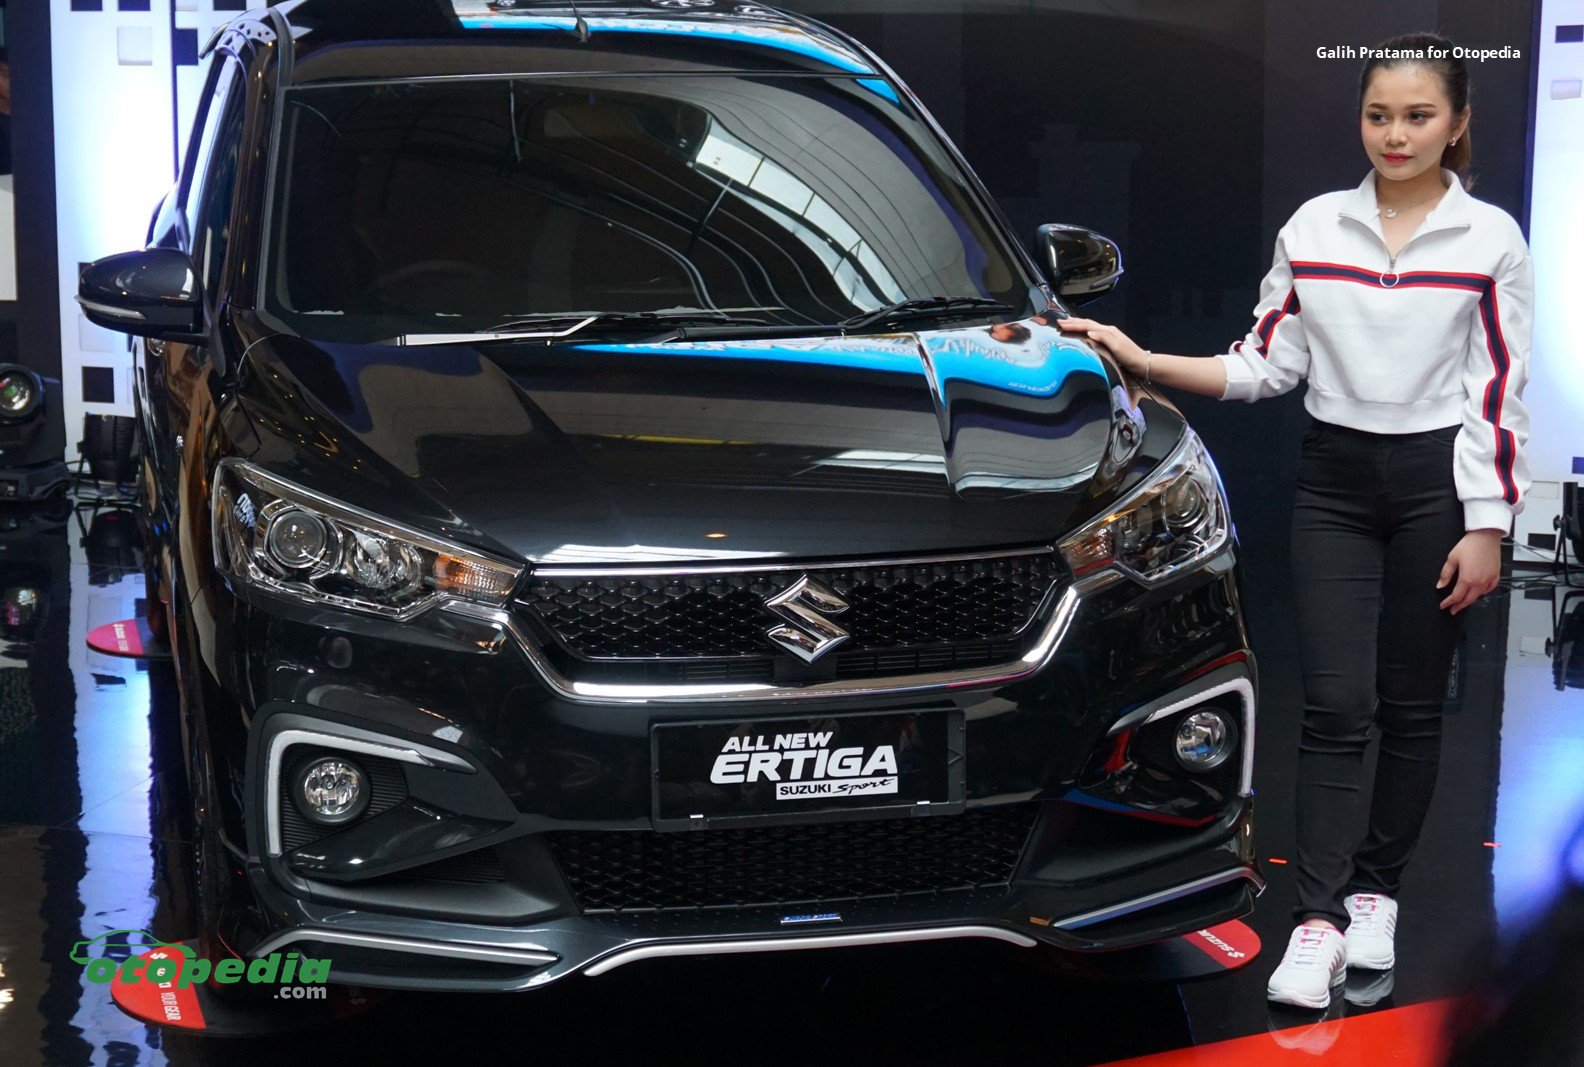 All New Ertiga Sport.jpg